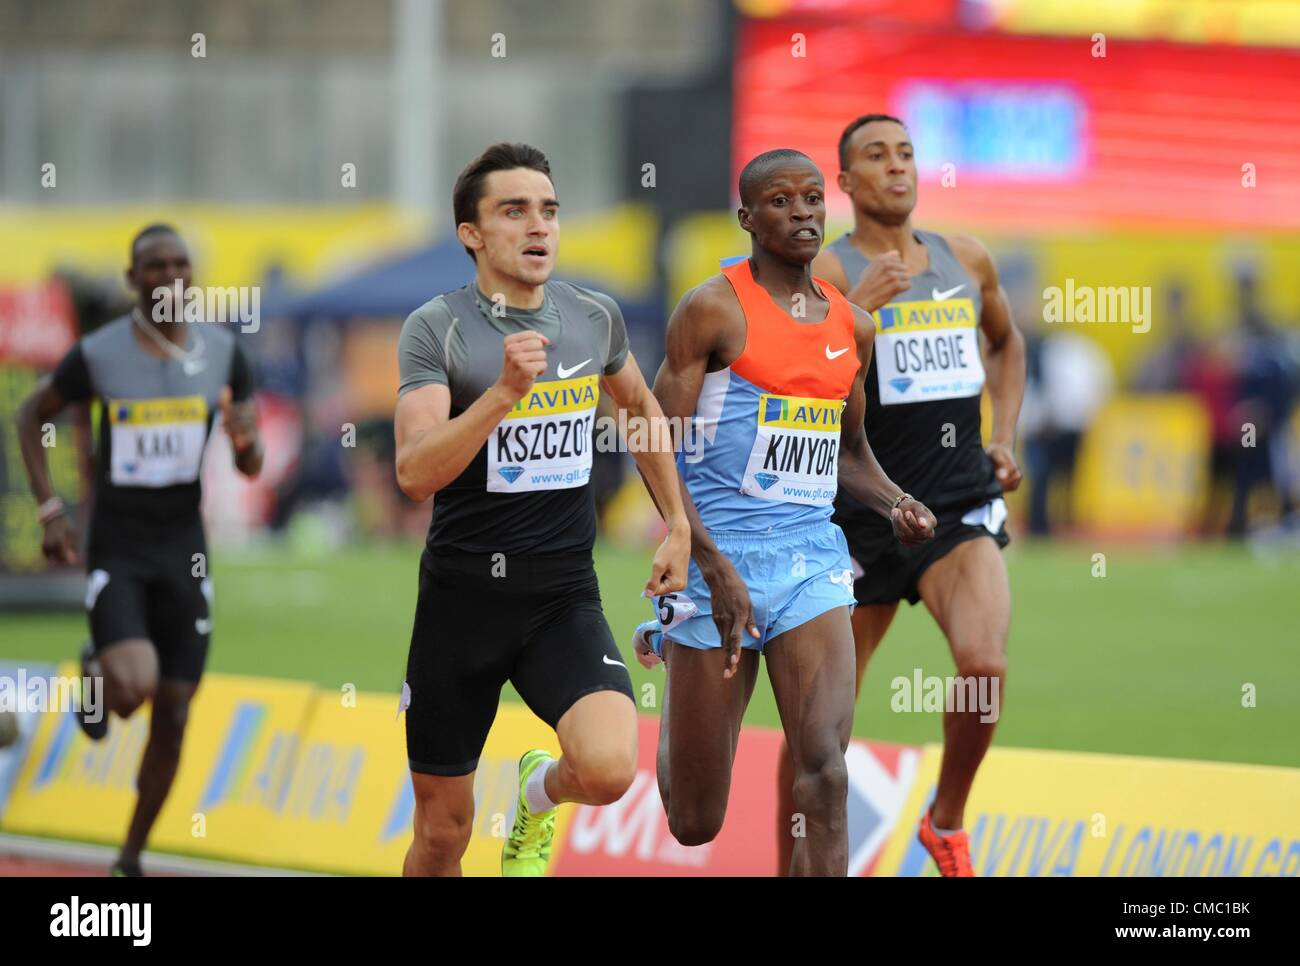 14.07.2012 Crystal Palace, London ENGLAND. , Mens 800m Final, Adam Kszczot, Job Kinyor in action during the Aviva - Stock Image